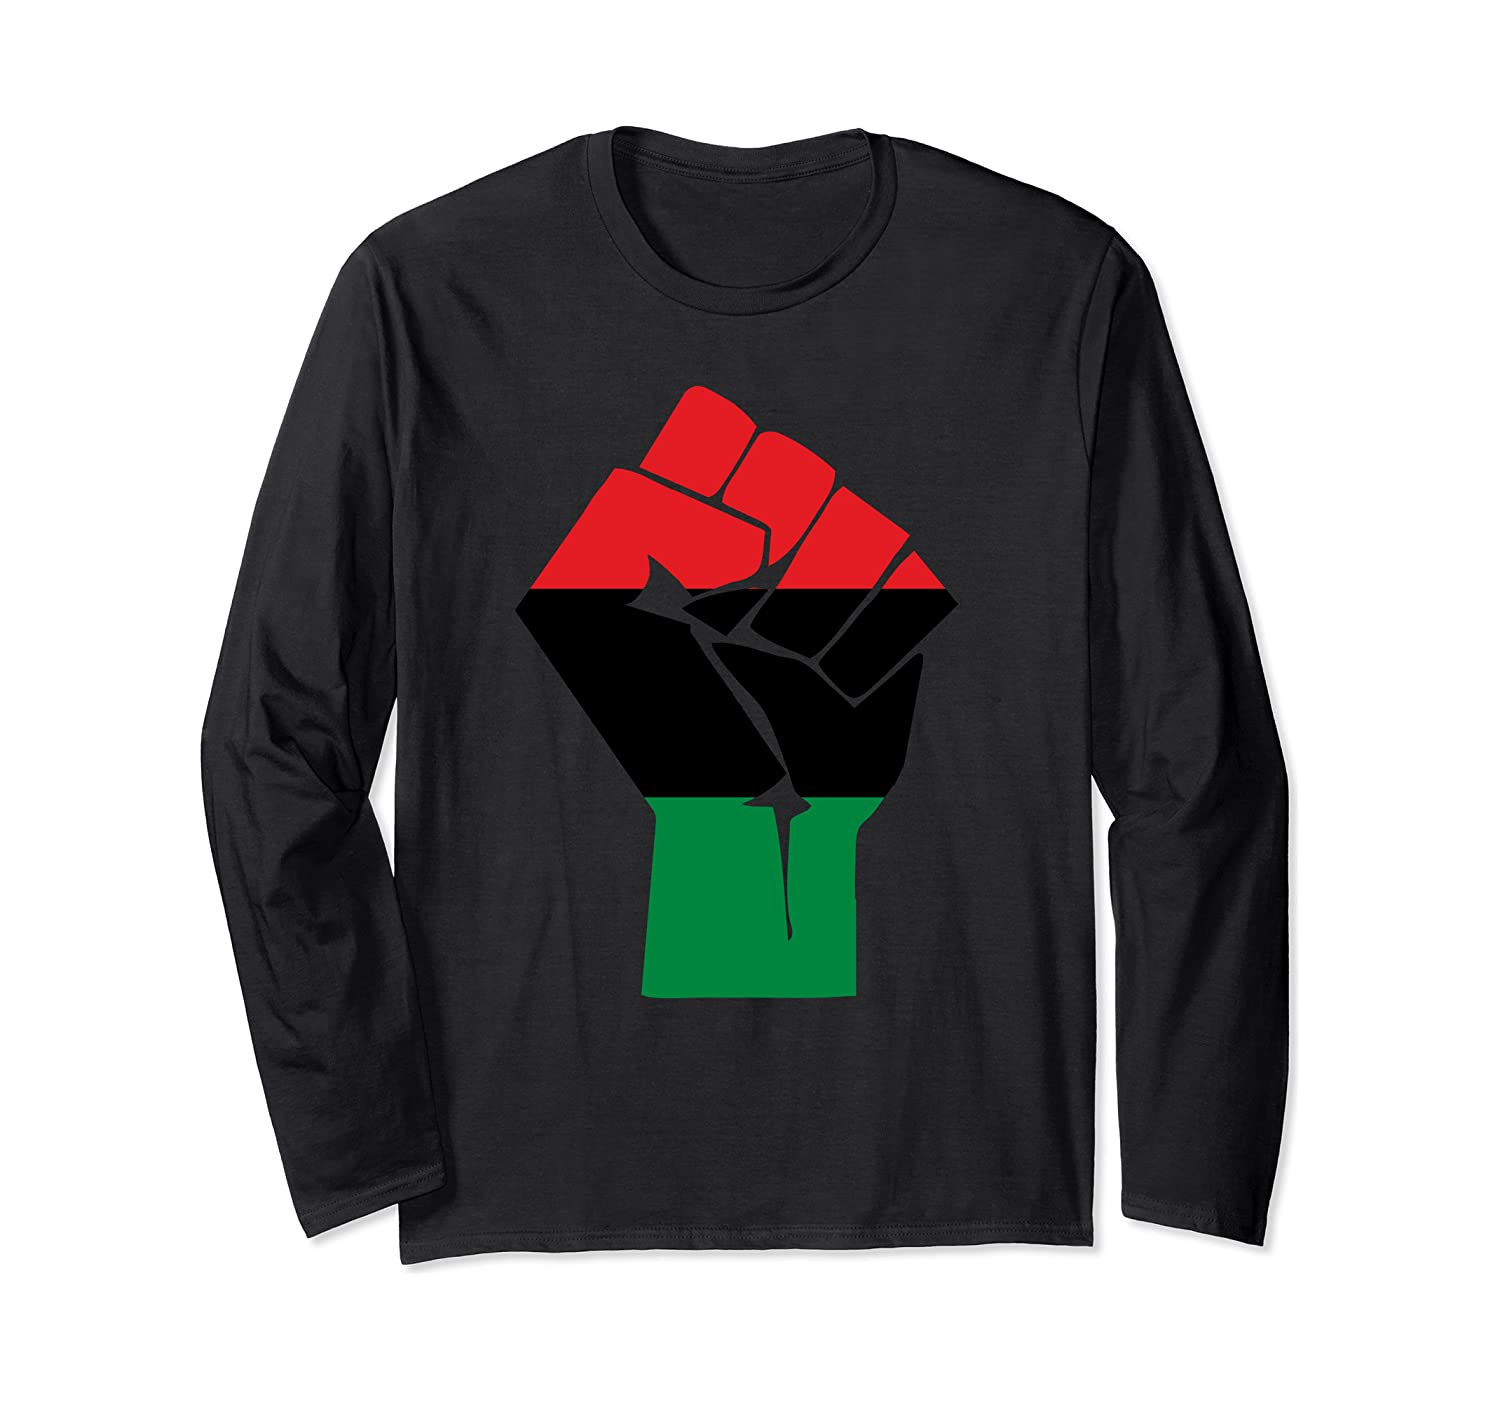 Afro-American Fist salute Shirt African Heritage Symbol Tee